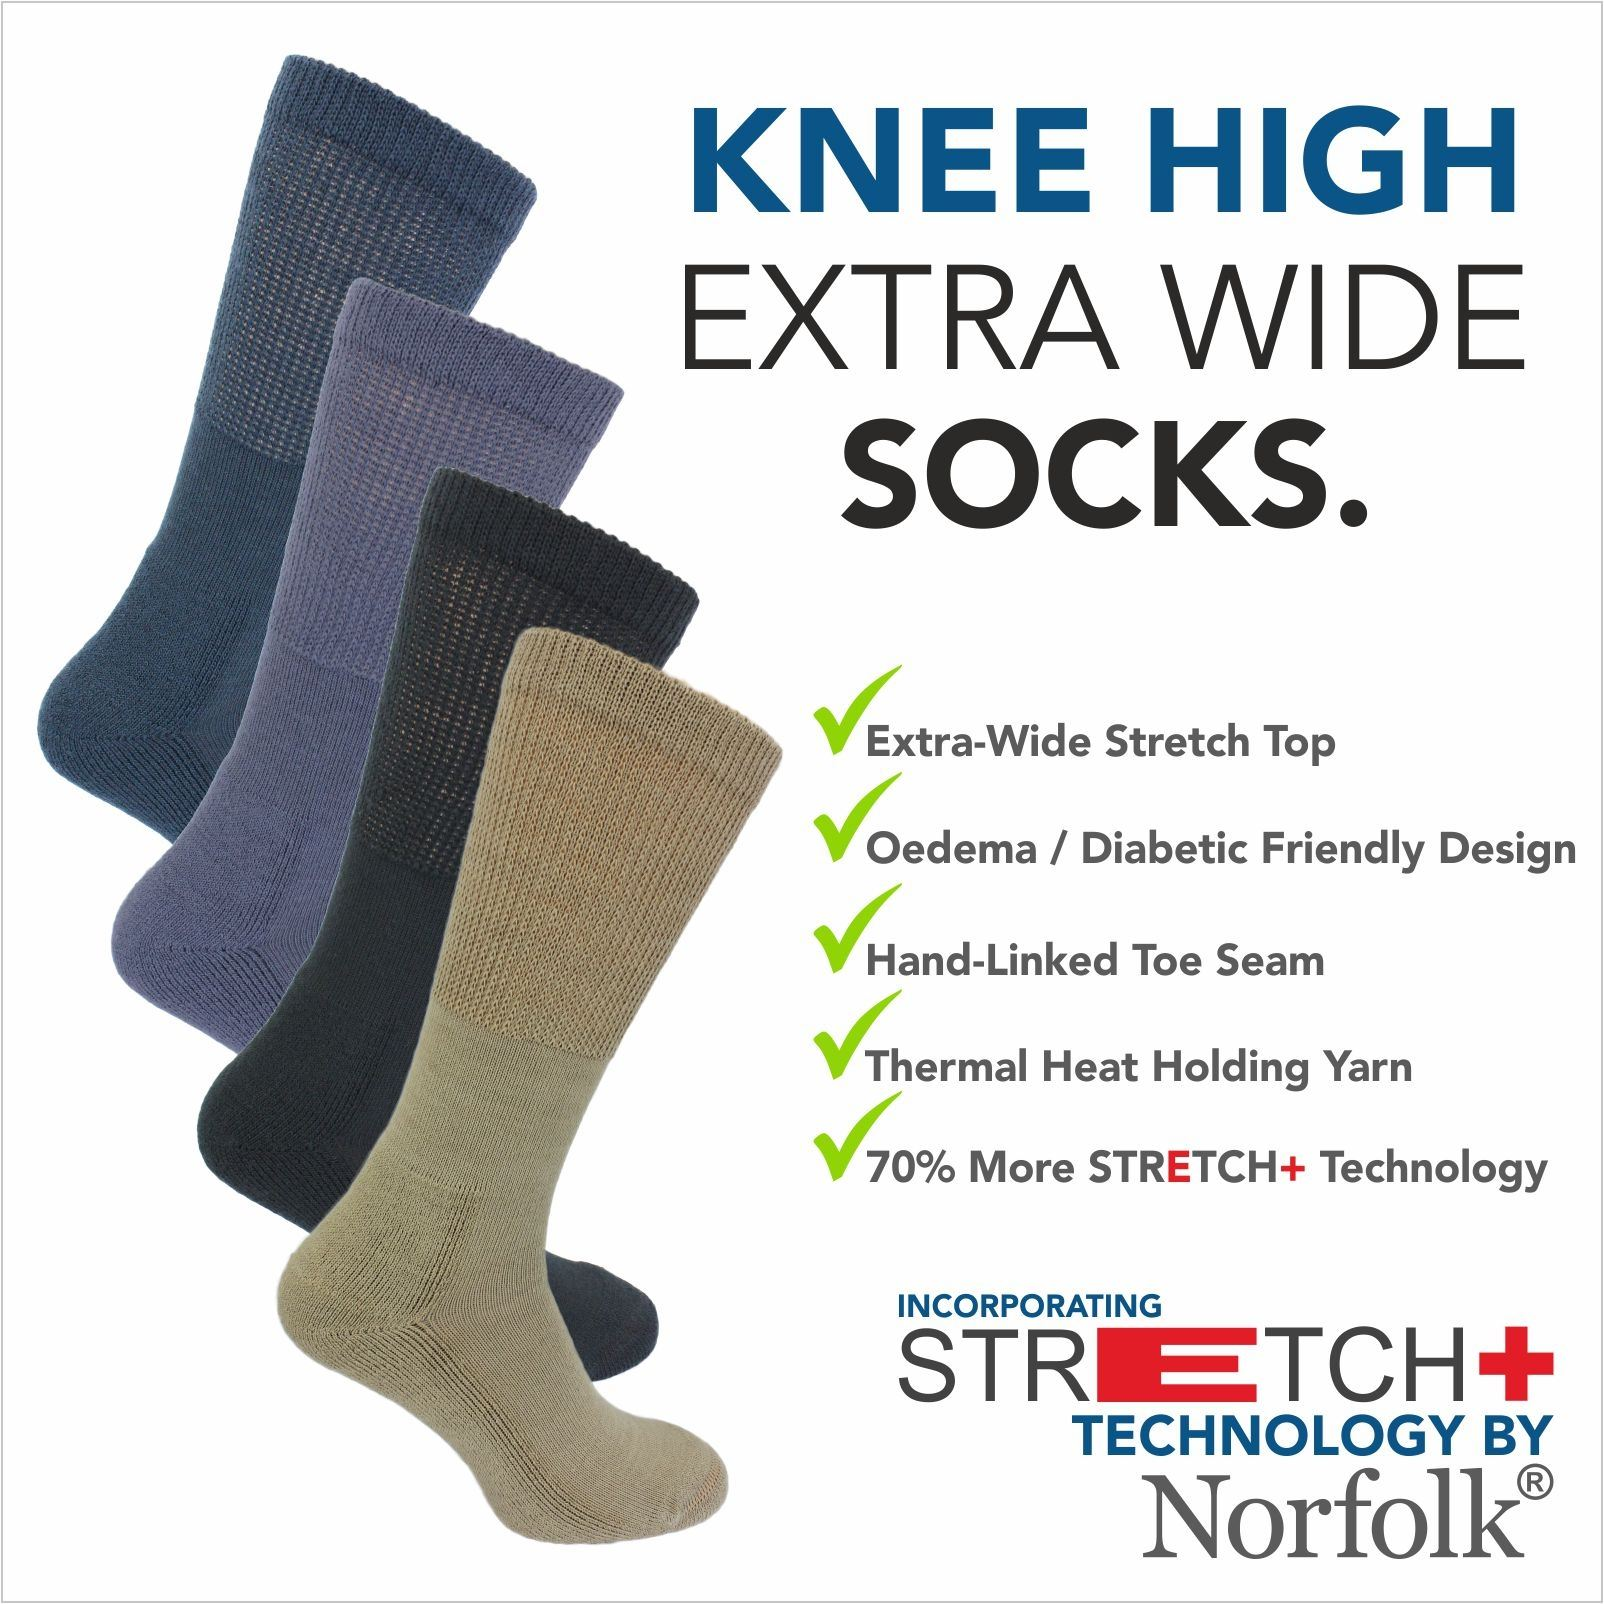 c5aae540f Details about Wool - Oedema Extra Wide Knee High Socks with Stretch+ By  Norfolk - Morgan